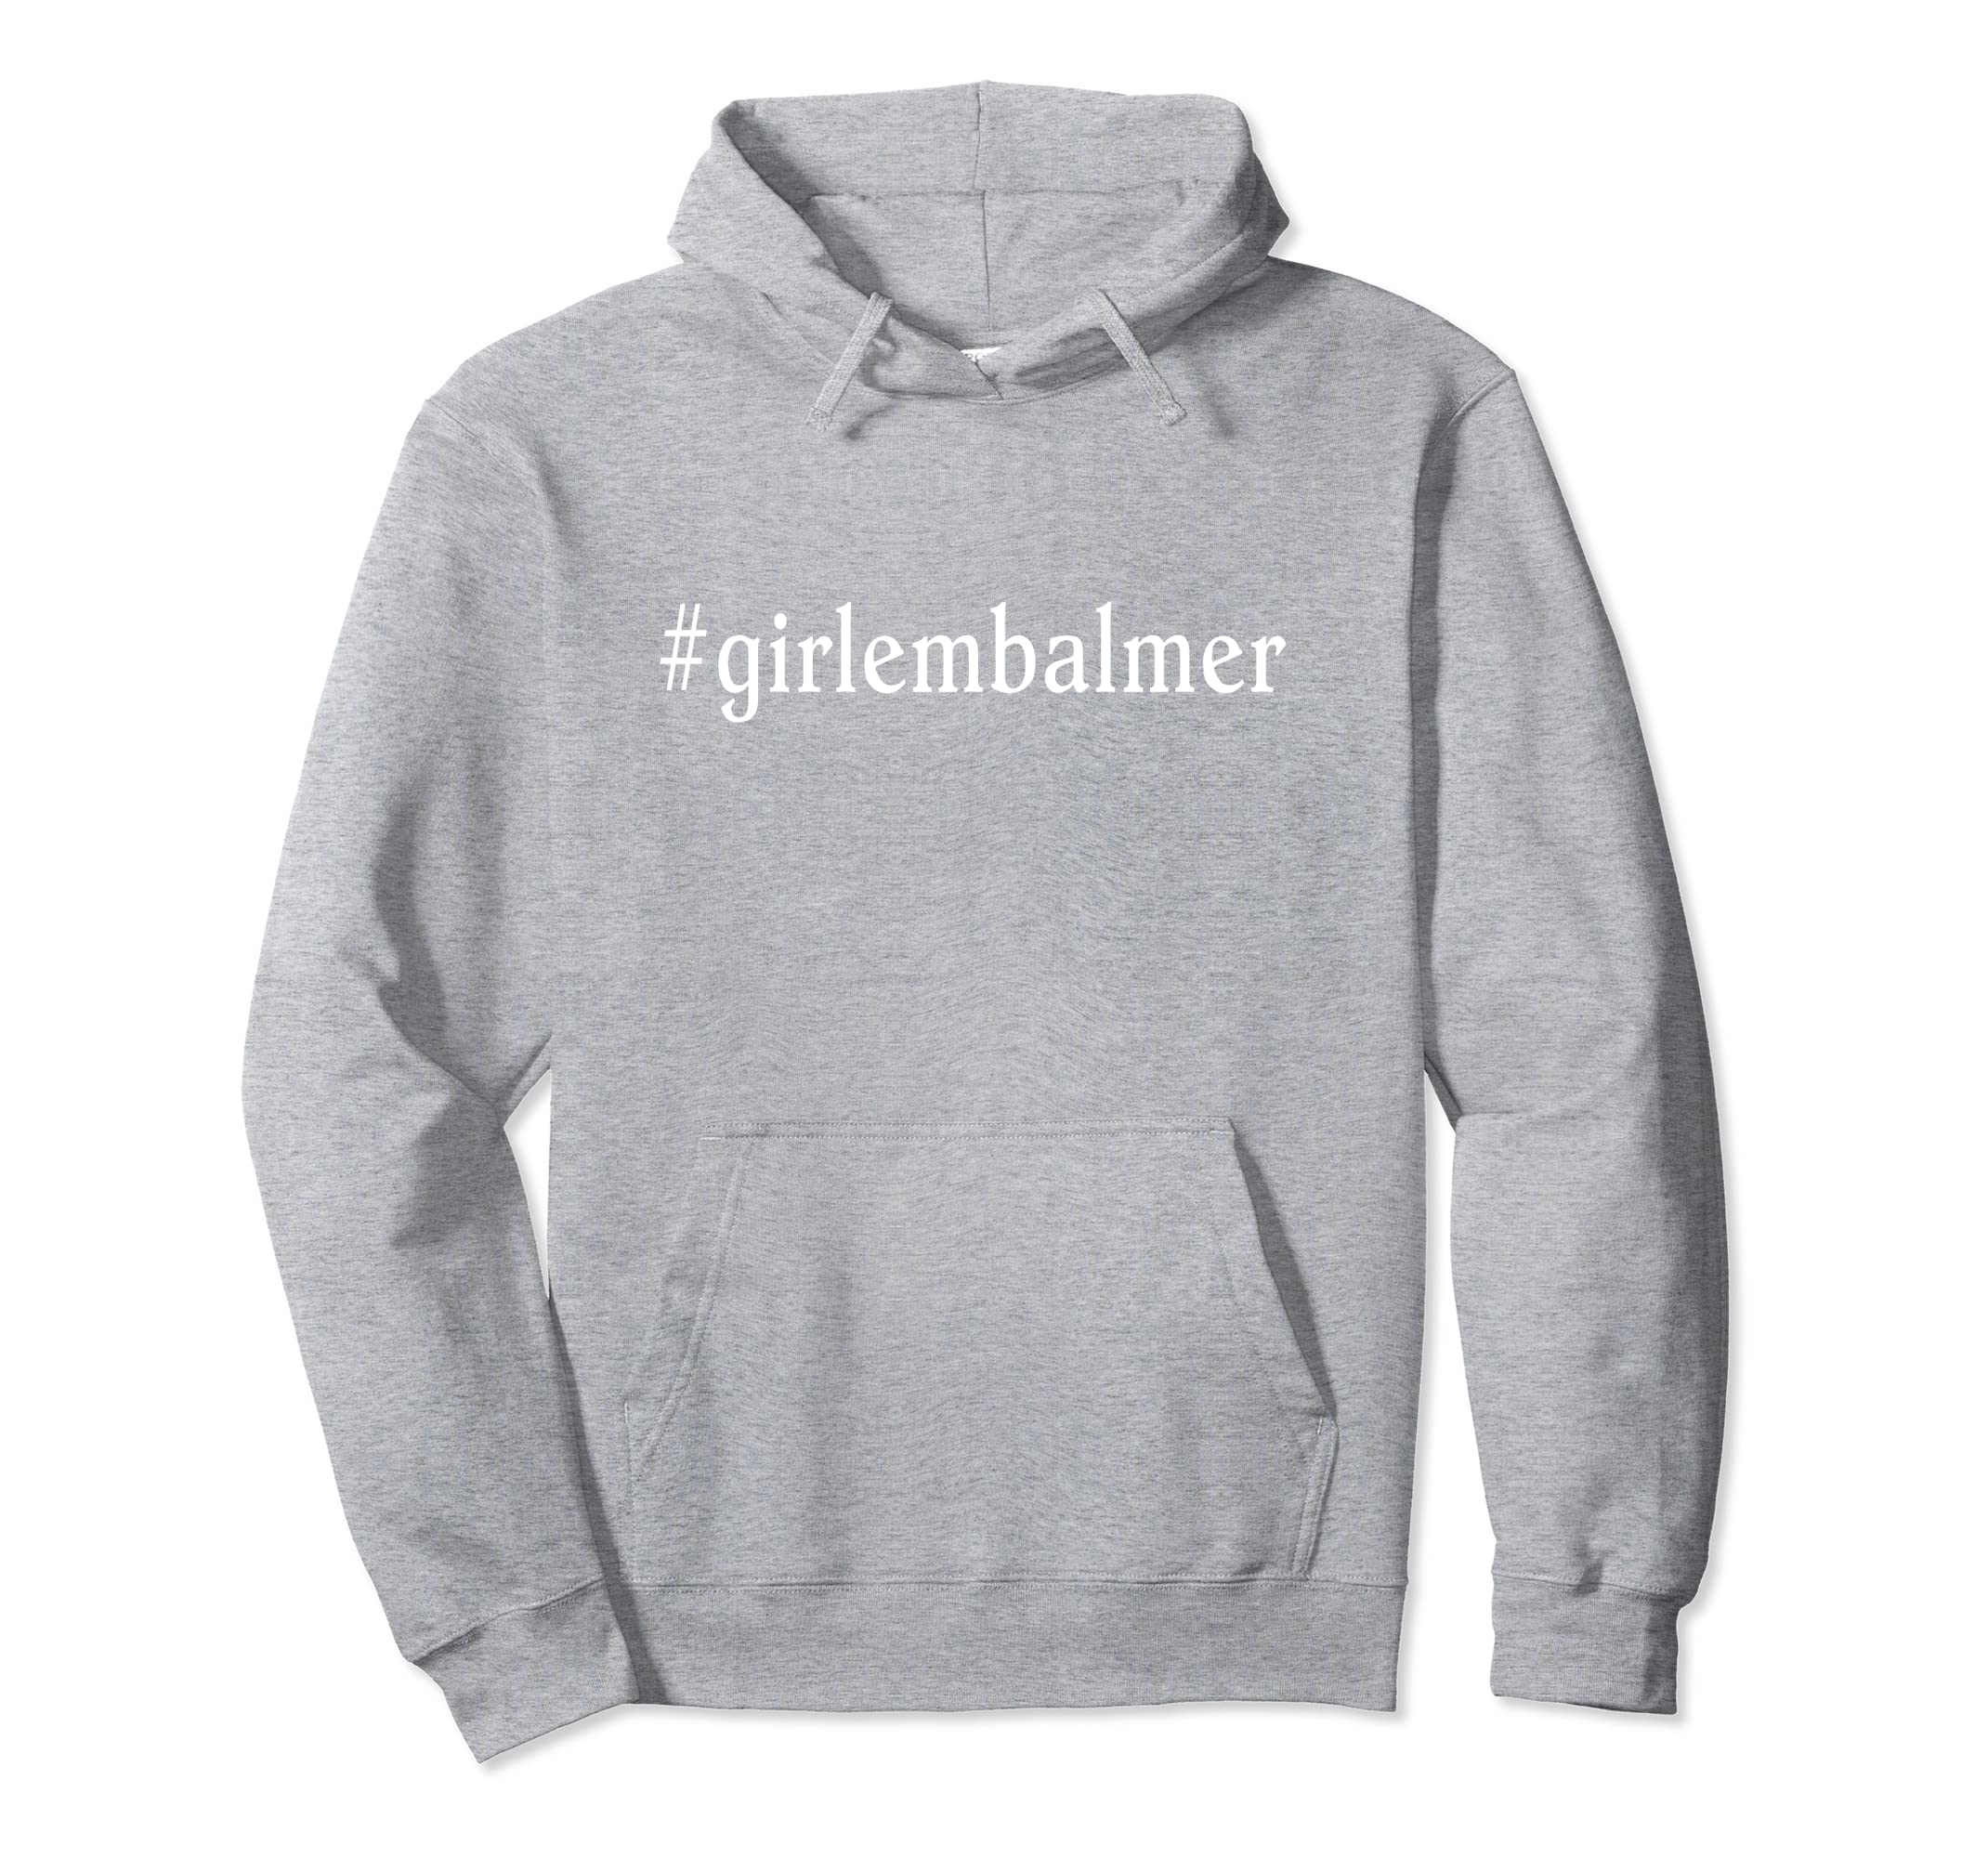 #girlembalmer Embalmer and Mortician Gift Hoodie for Women-Rose